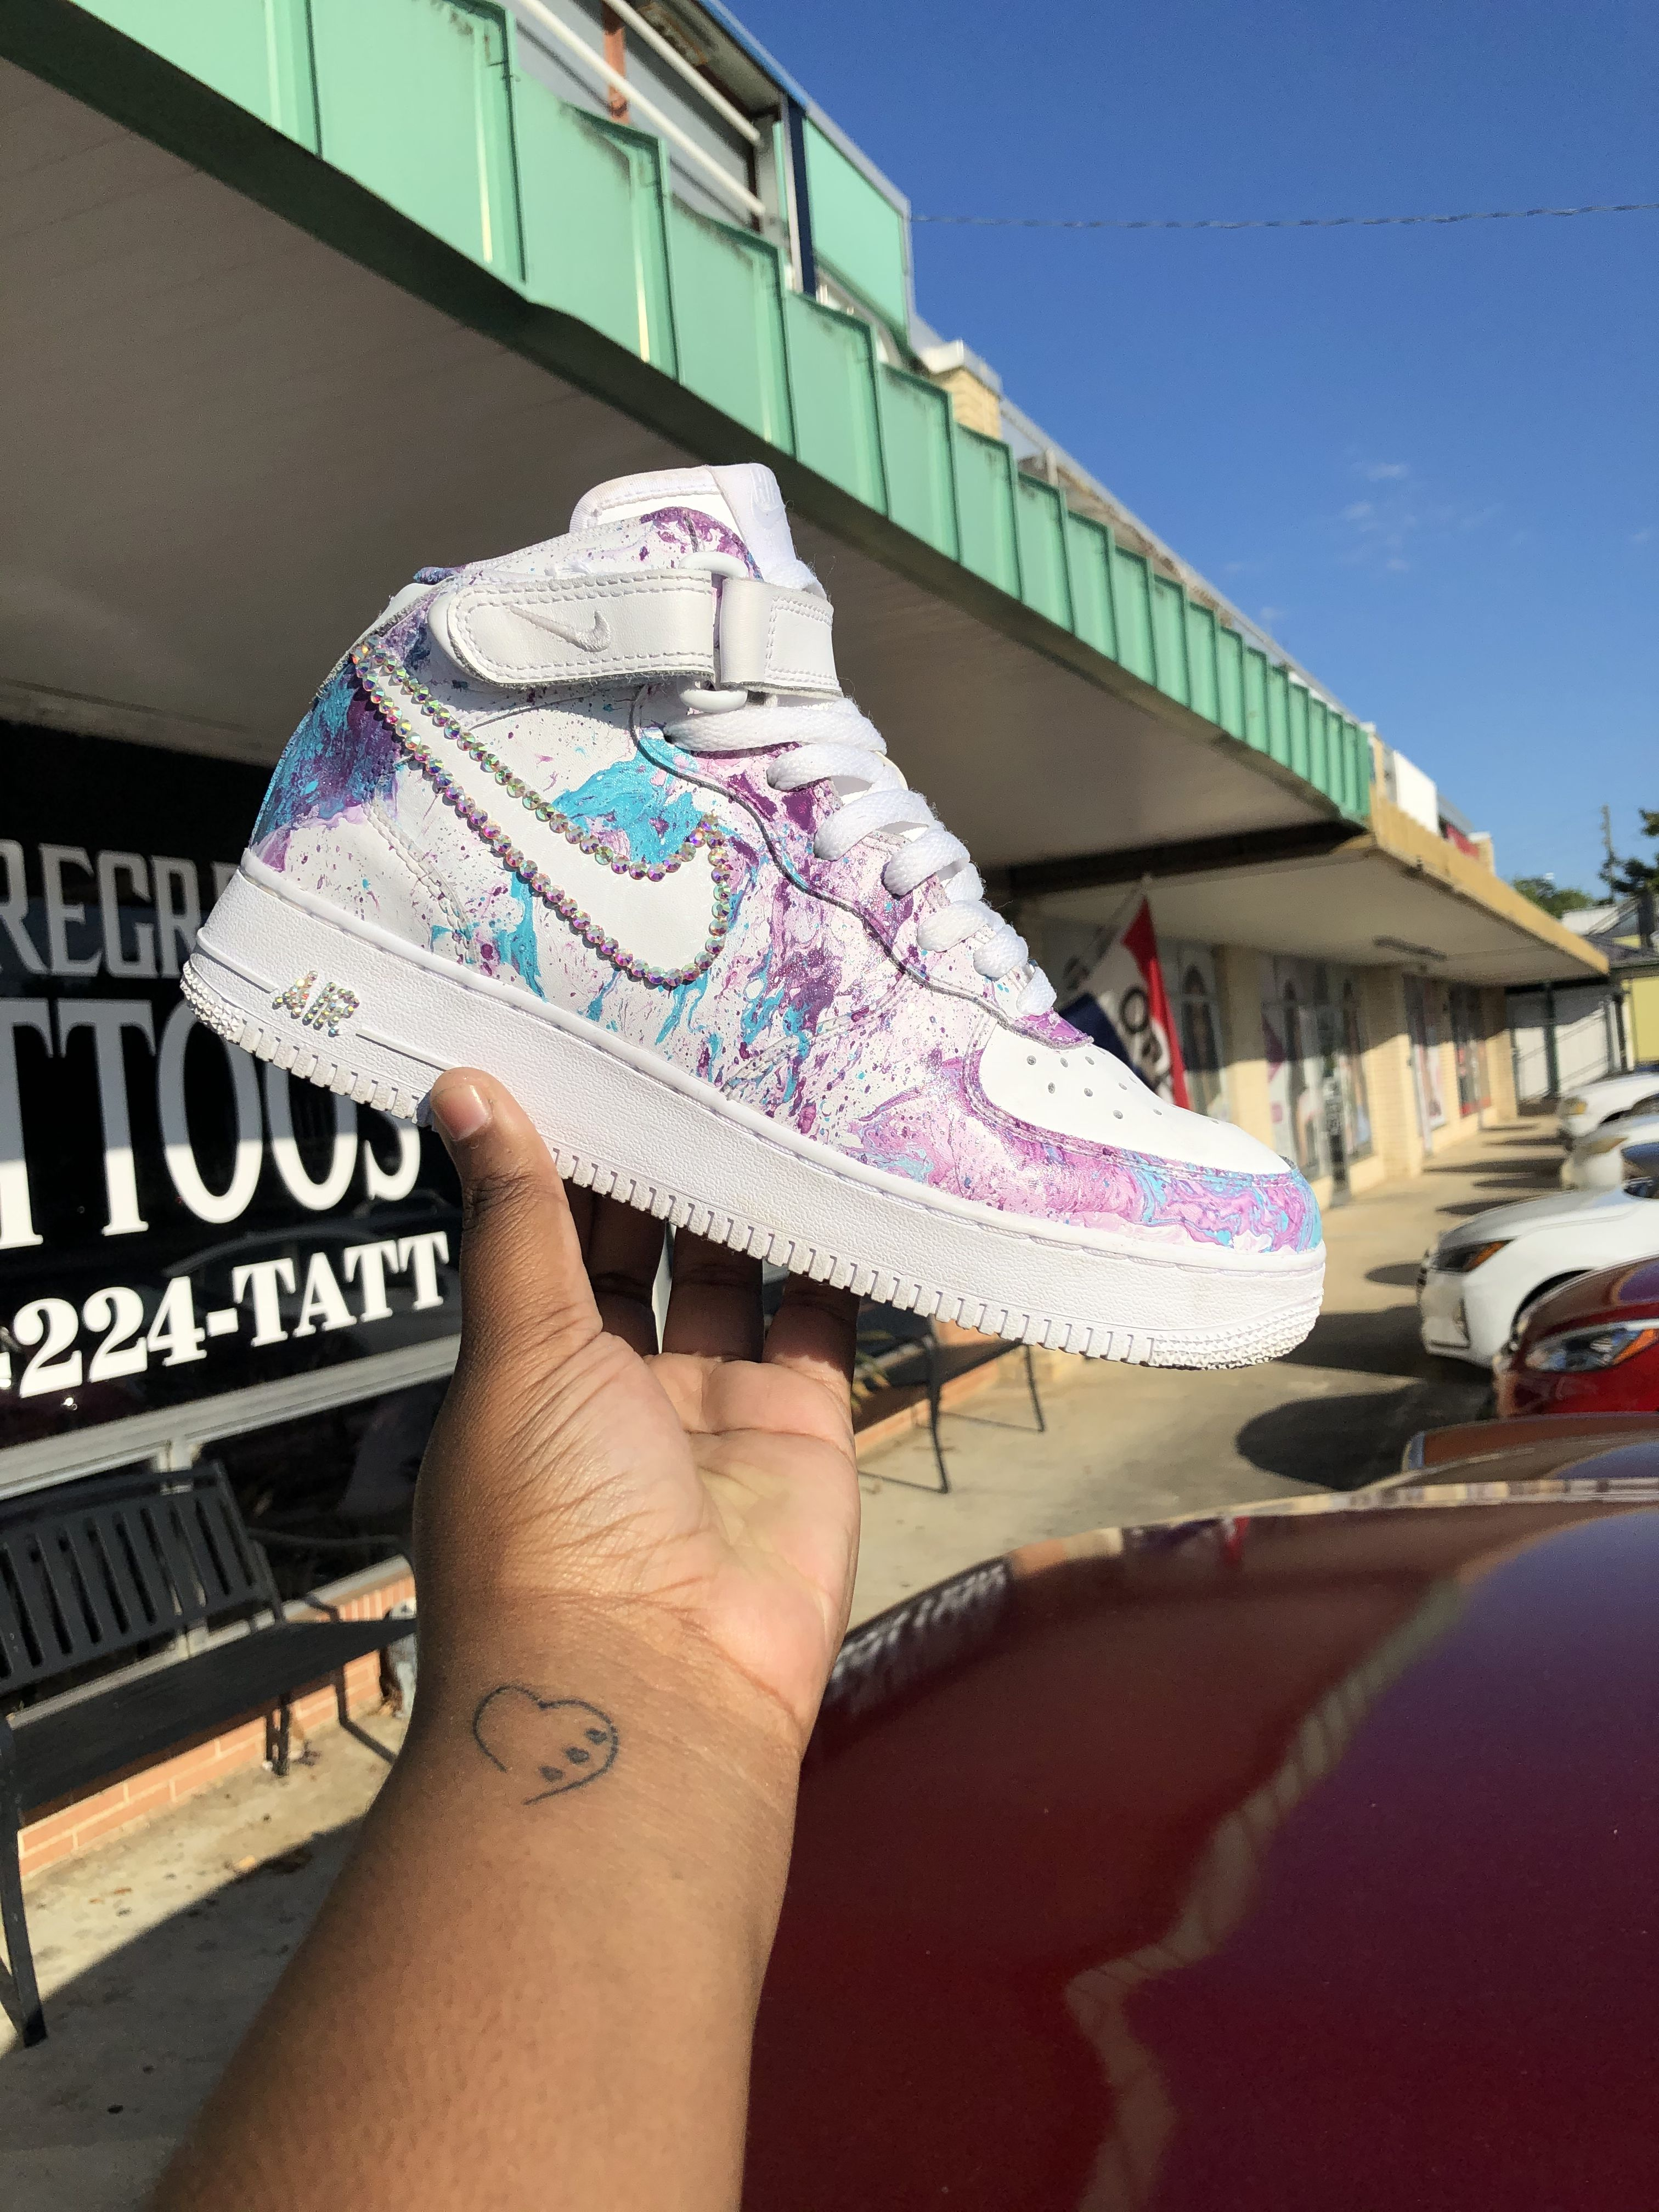 These are hydrodipped Air Force one mids. With a little